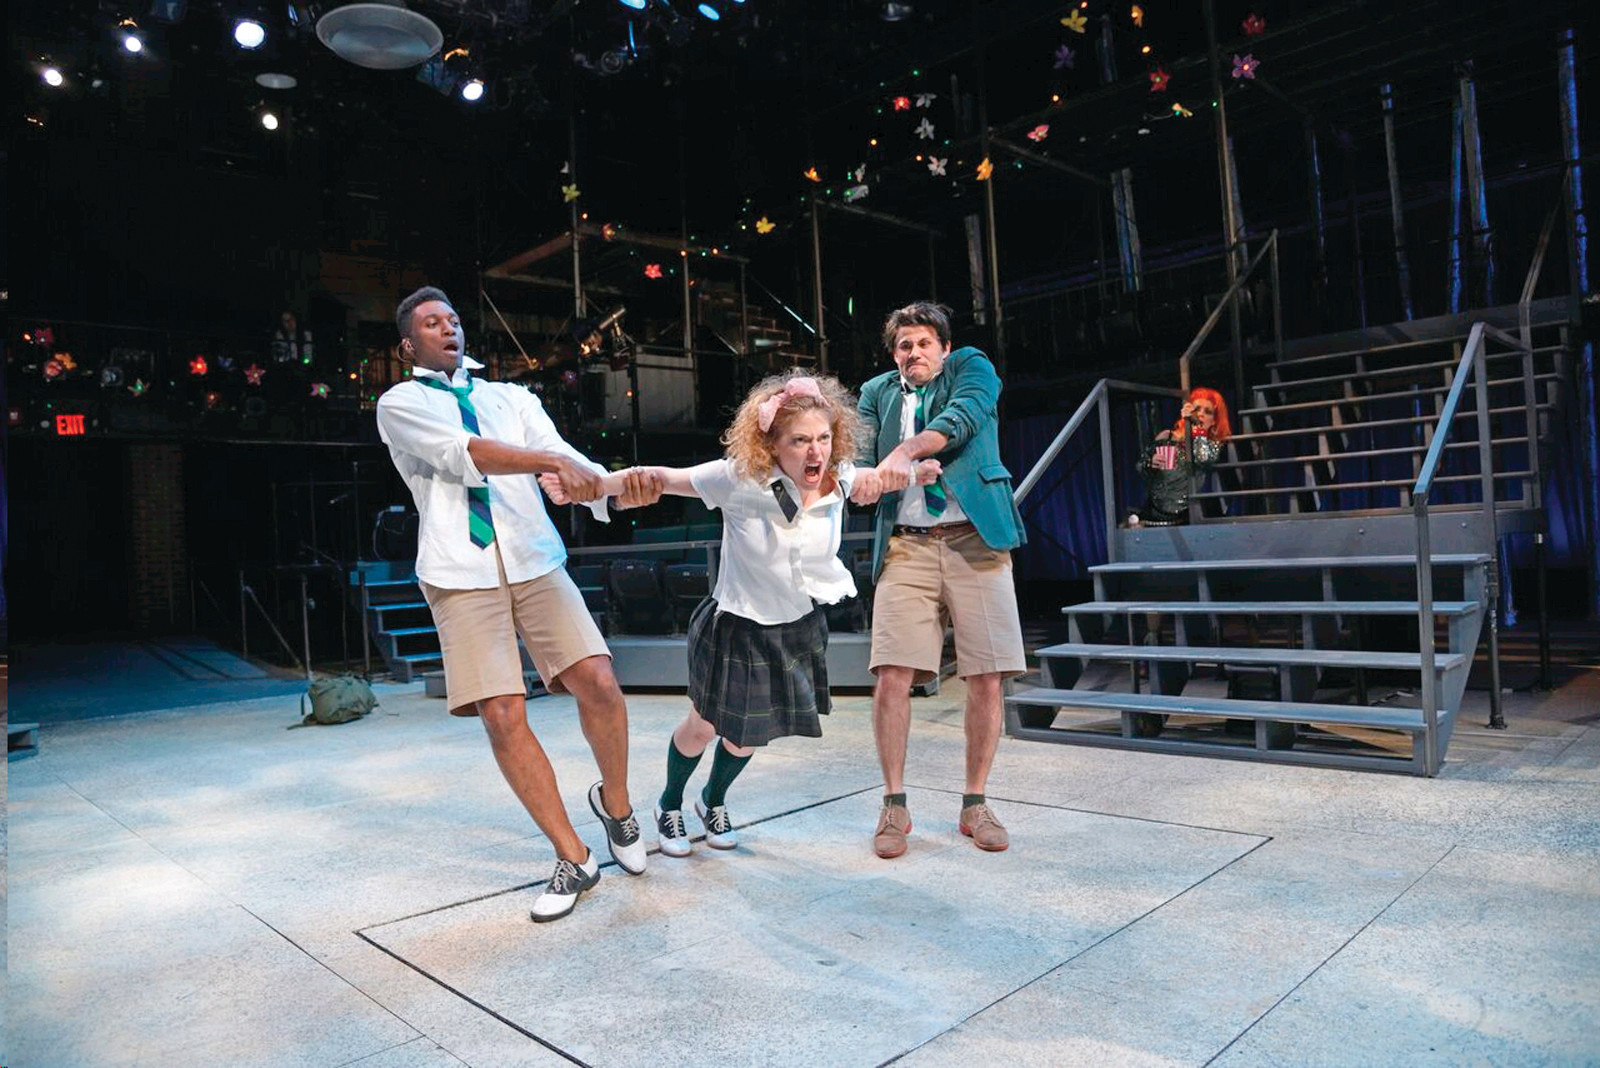 From left to right: Jude Sandy as Demetrius, Rebecca Gibel as Hermia, Daniel Duque-Estrada as Lysander, Rachael Warren as Puck.